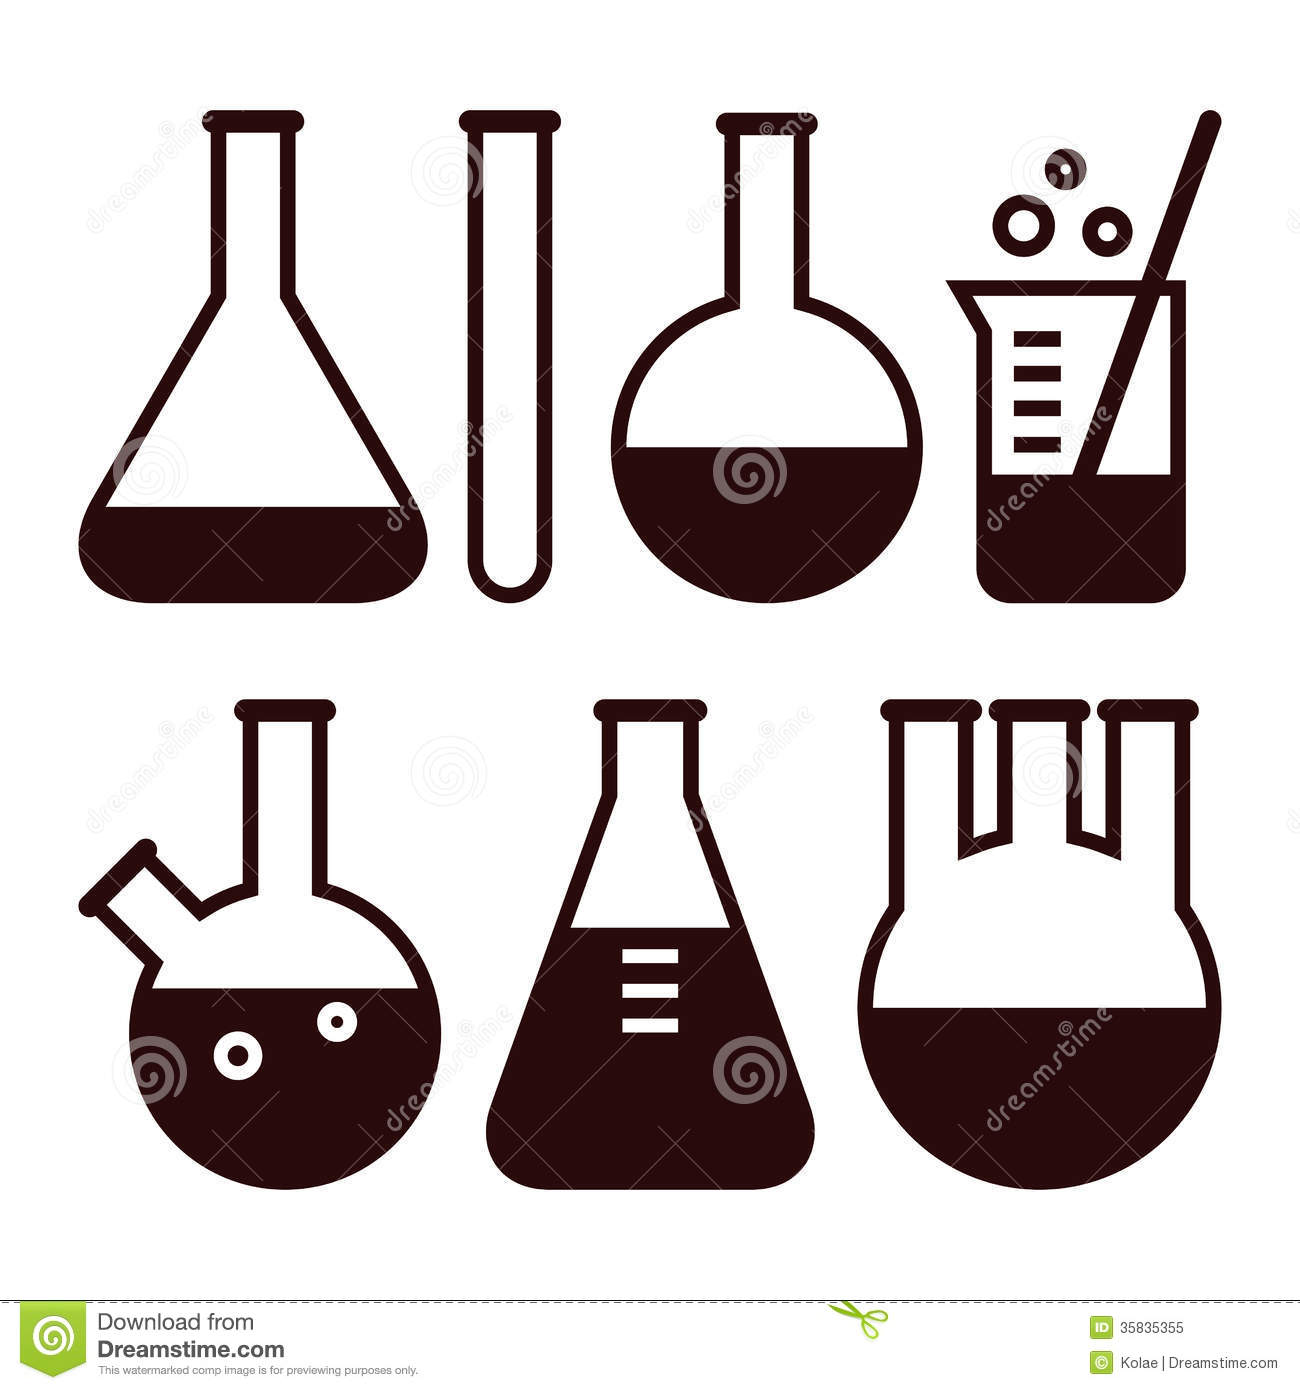 Lab equipment clipart.